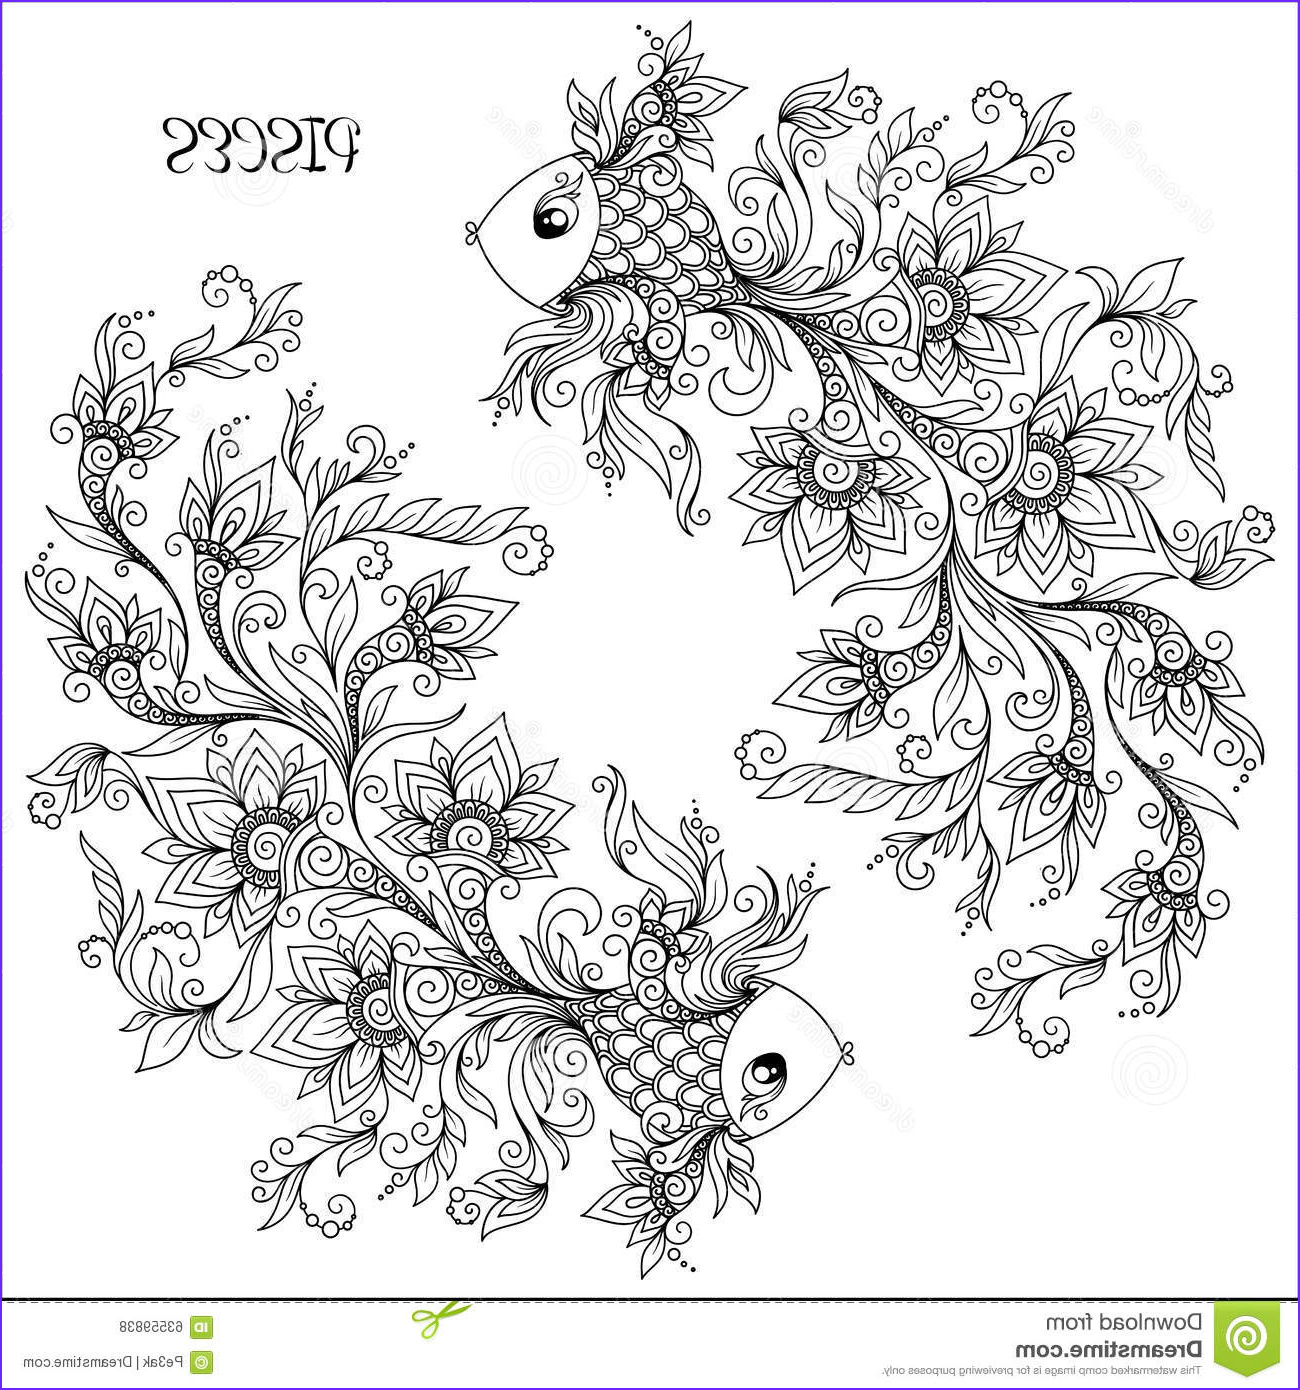 stock illustration hand drawn pattern coloring book zodiac pisces line flowers art horoscope symbol your use tattoo art books image